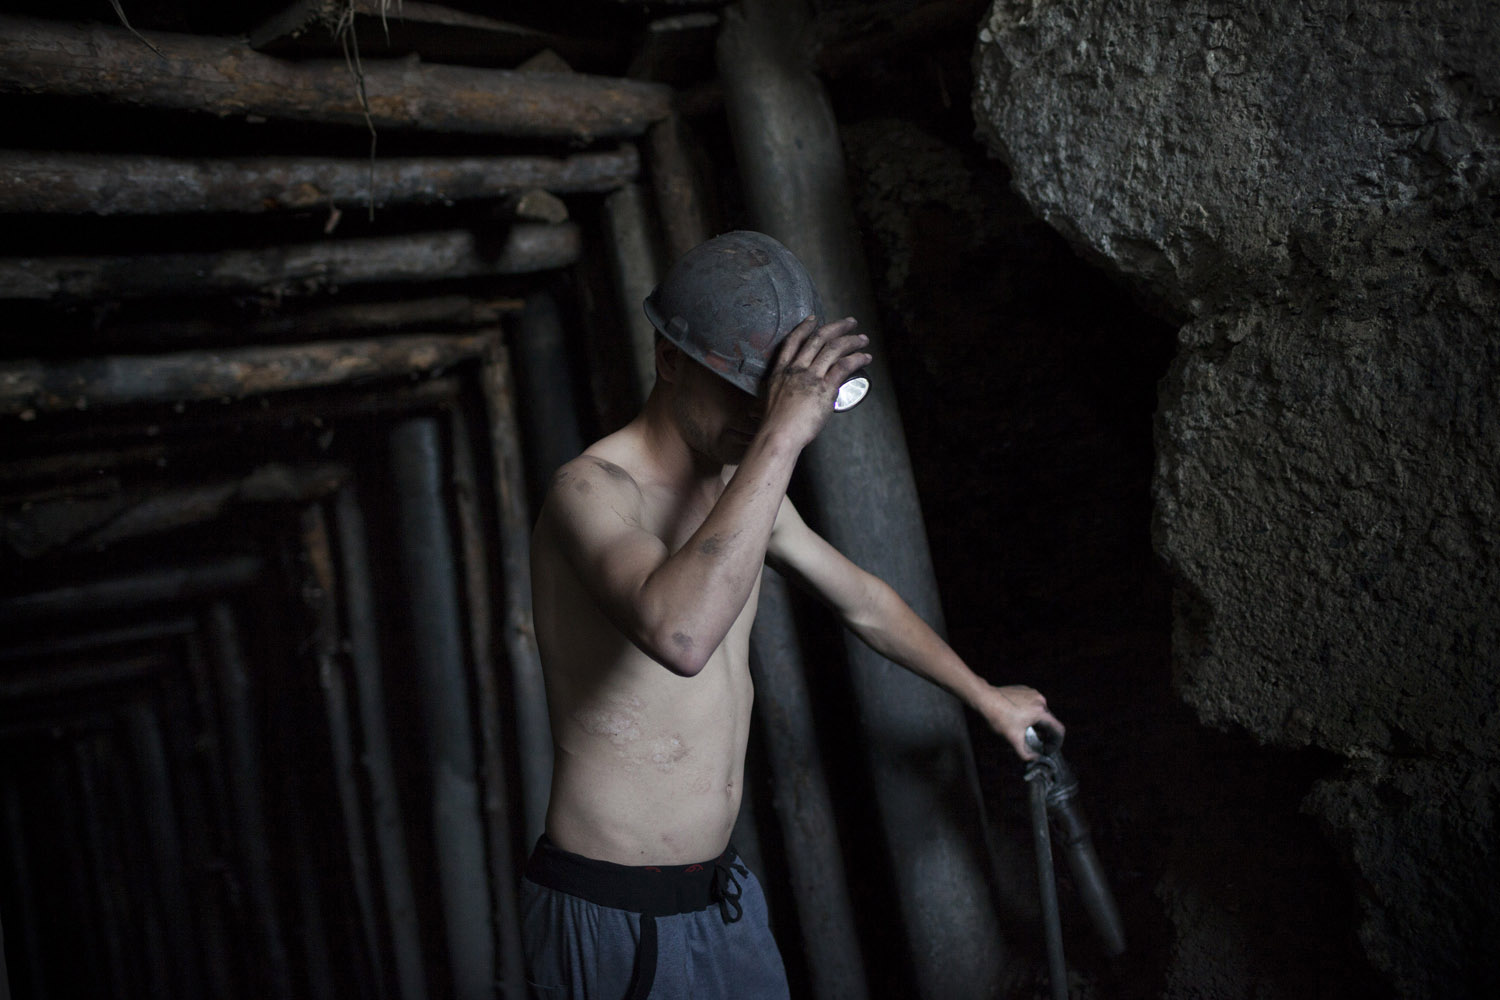 A young miner coming out of an illegal mine near Shakhtiorsk. The mine is not operating at full capacity after water begun leaking into the tunnels, making work extremely dangerous. Illegal mines are mostly owned by local criminals who simply took over what in theory is a national resource.